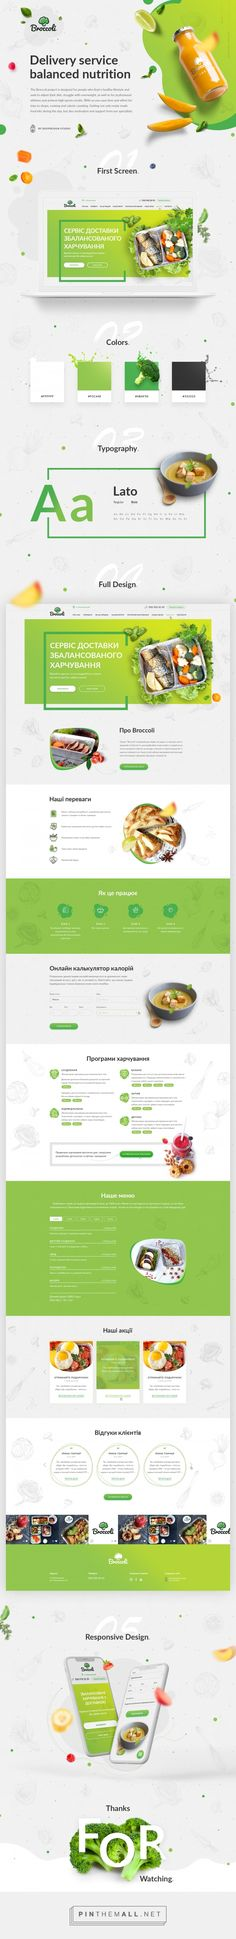 Web site for Healthy food delivery service. on Behance a grouped images pic - Food Delivery Service - Ideas of Food Delivery Service - Web site for Healthy food delivery service. on Behance a grouped images picture Pin Them All Food Web Design, Food Graphic Design, Design Logo, Design Poster, Web Design Trends, Healthy Food Delivery, Delivery Food, Design Presentation, Food Website